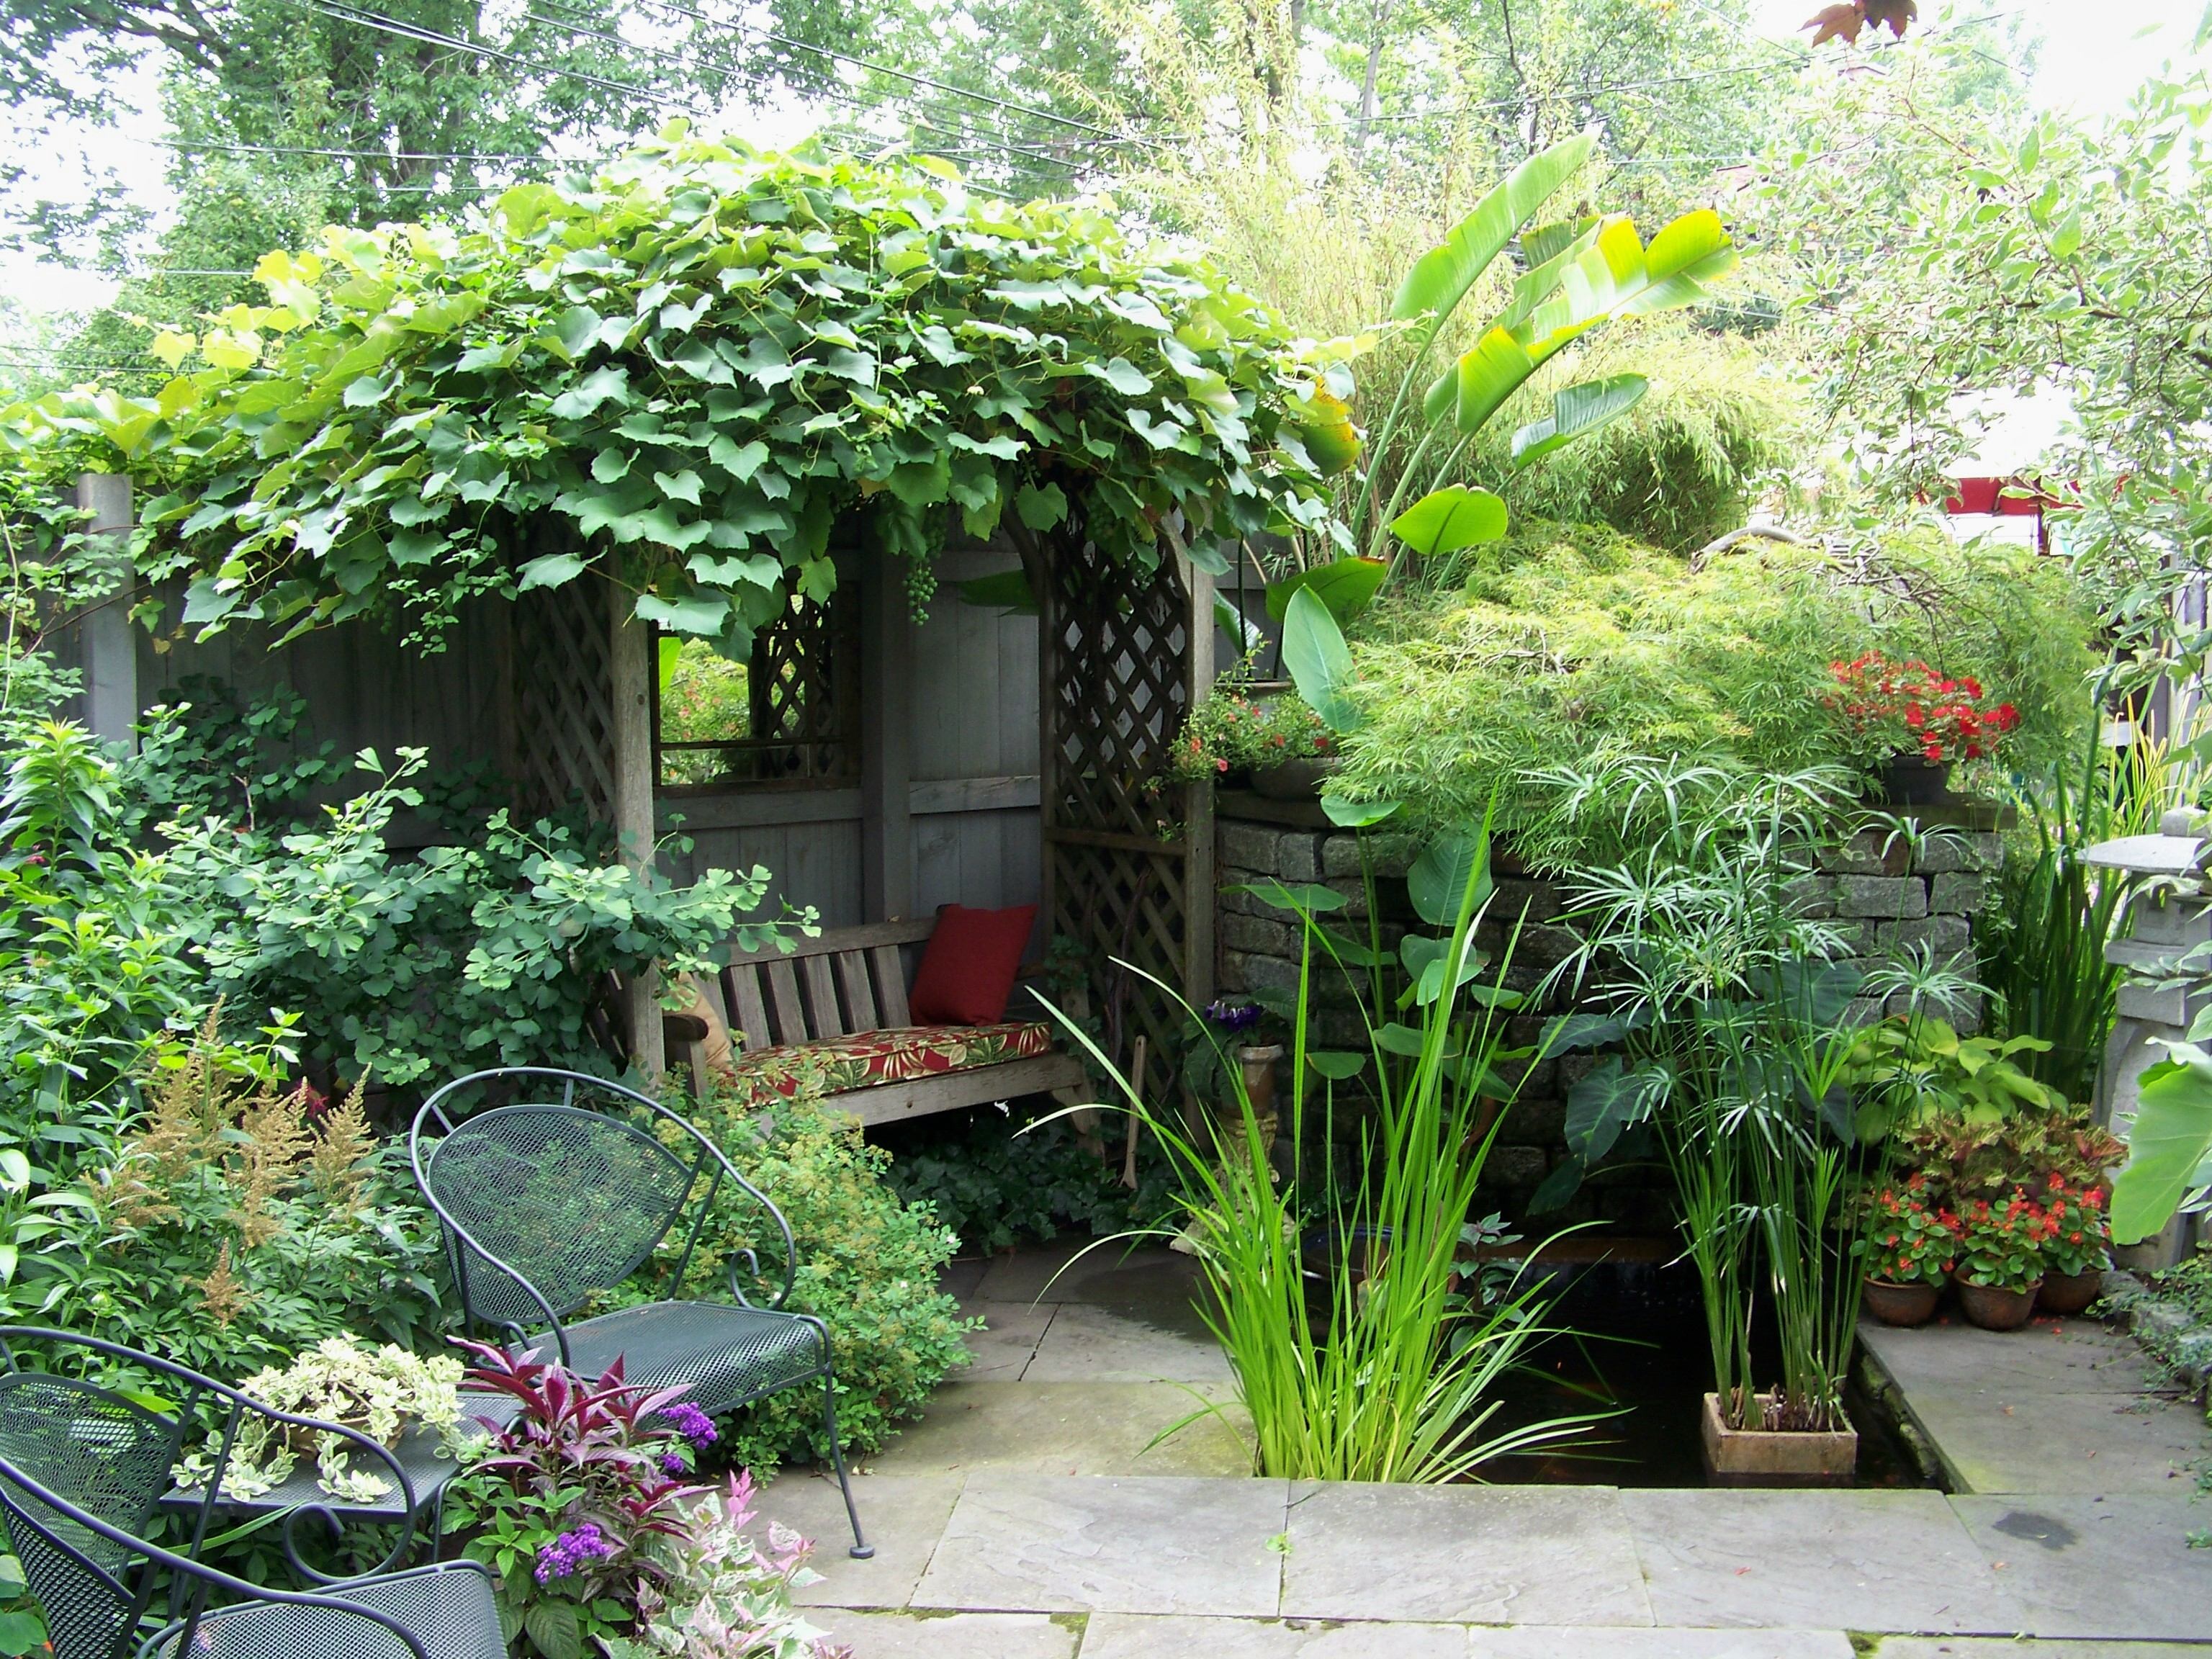 5 Amazing Small Yard Garden Ideas - NLC Loans on Amazing Backyard Ideas id=87735